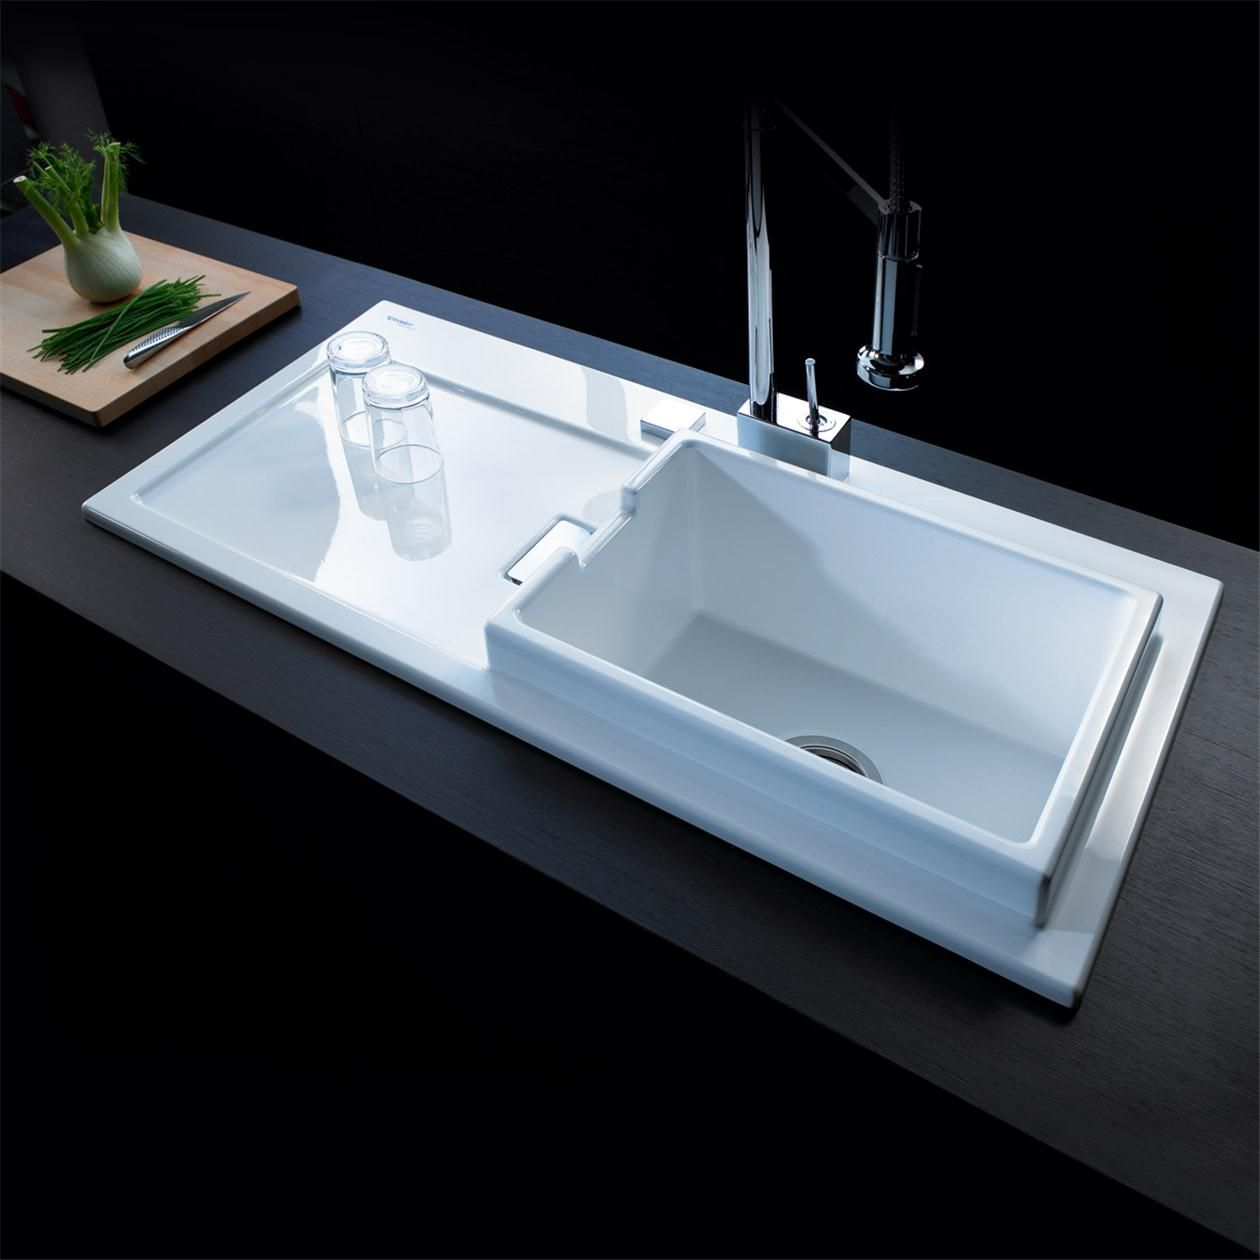 Evier c ramique duravit starck k60 blanc 1 grand bac gouttoir gauche for the kitchen - Evier ceramique inbouwoven blanc ...